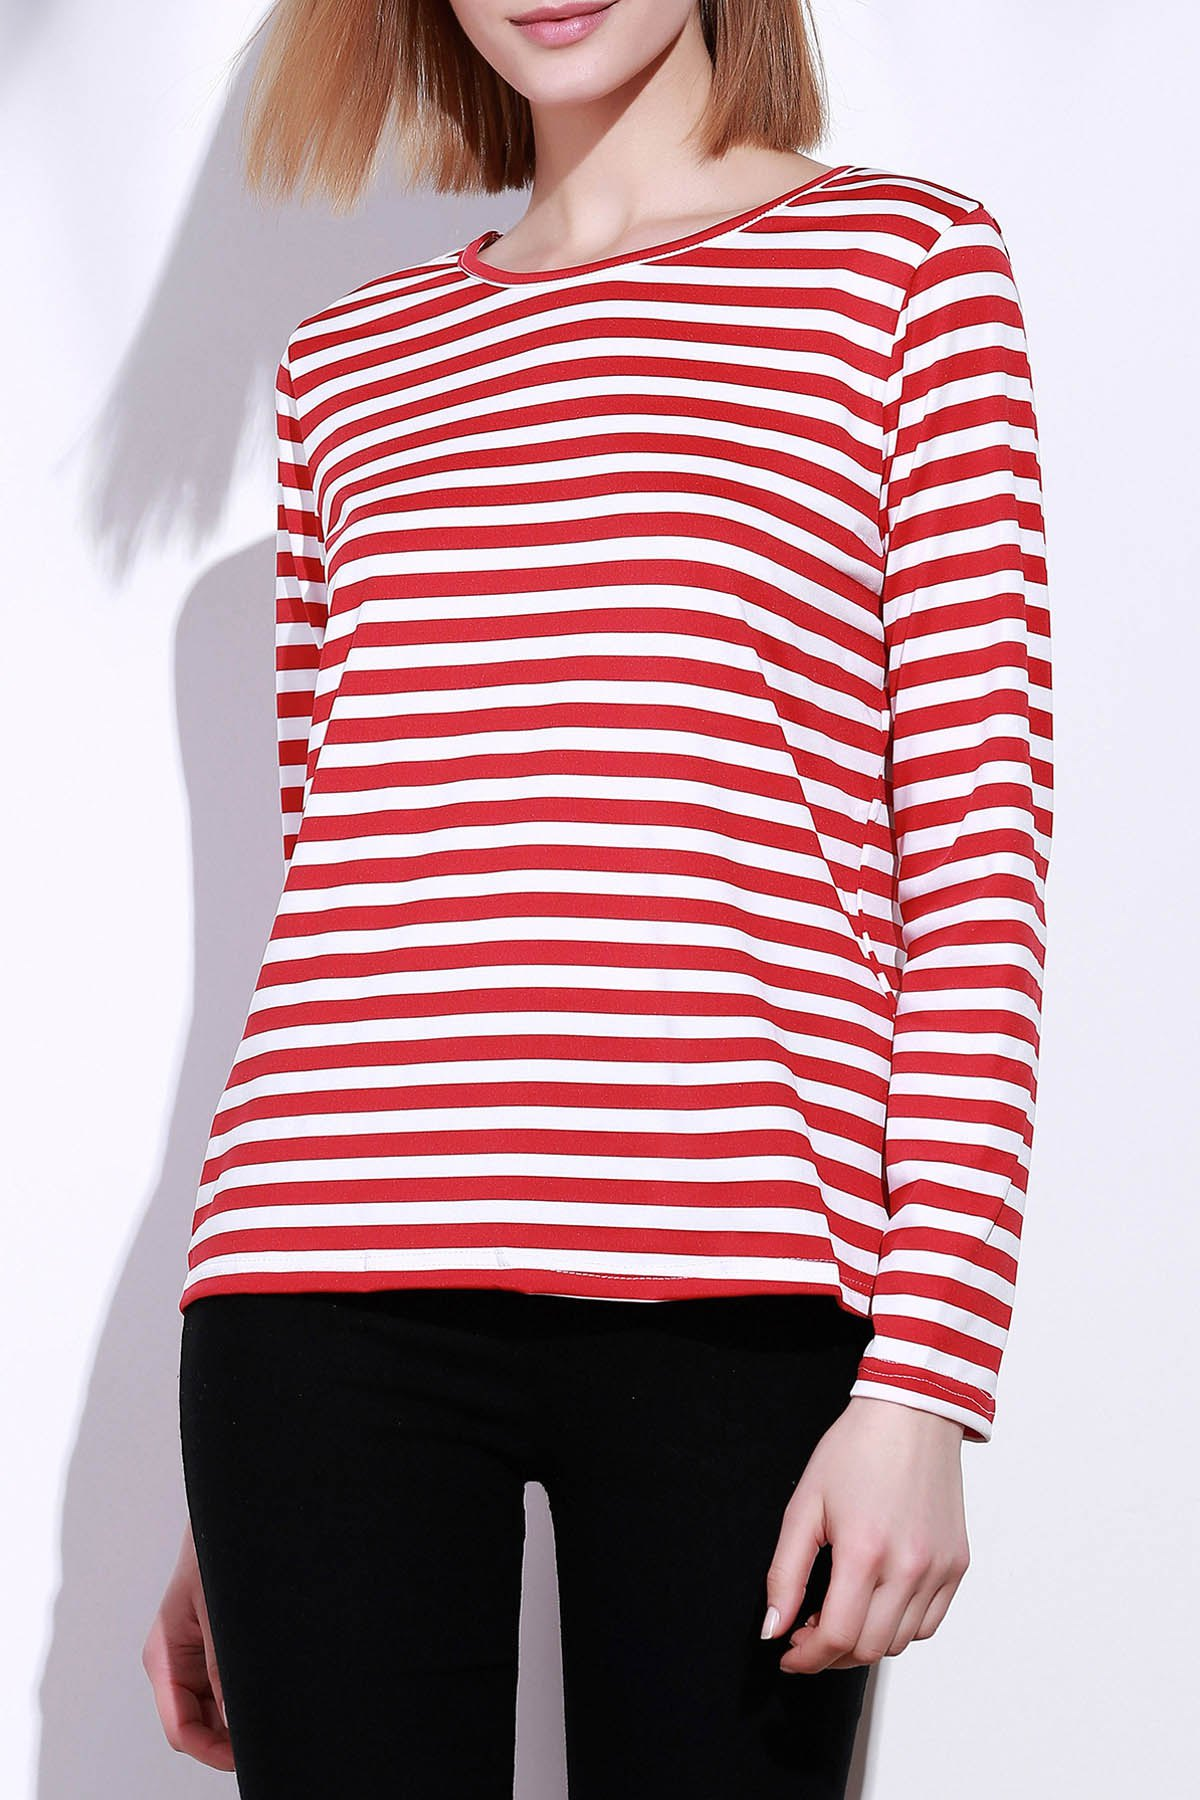 Casual Round Collar Stripes Print Long Sleeve Women's T-Shirt - S RED